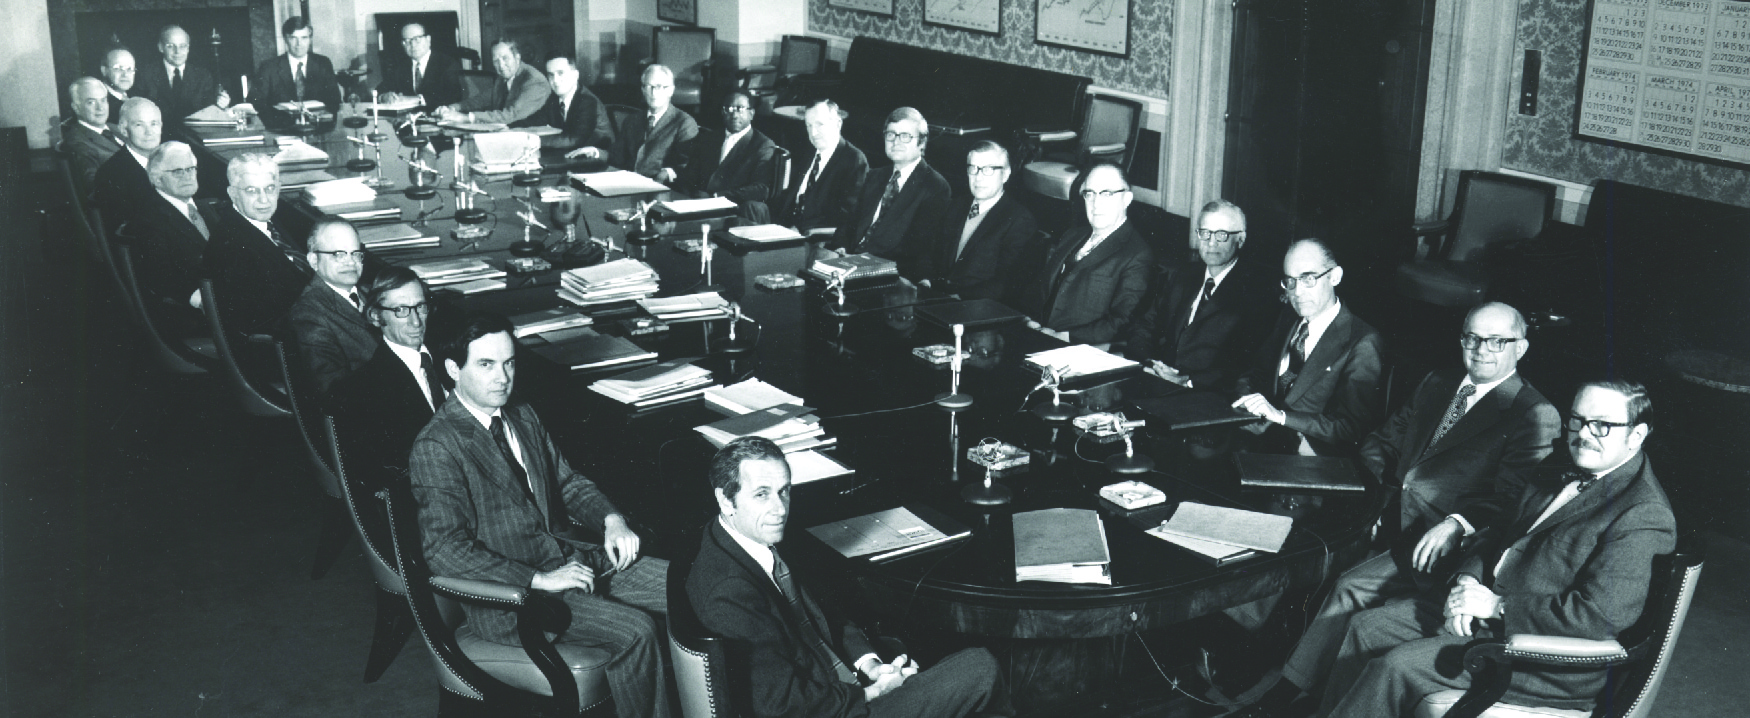 This image shows twenty-three white men and one black man in suits sitting around a large boardroom-style table.